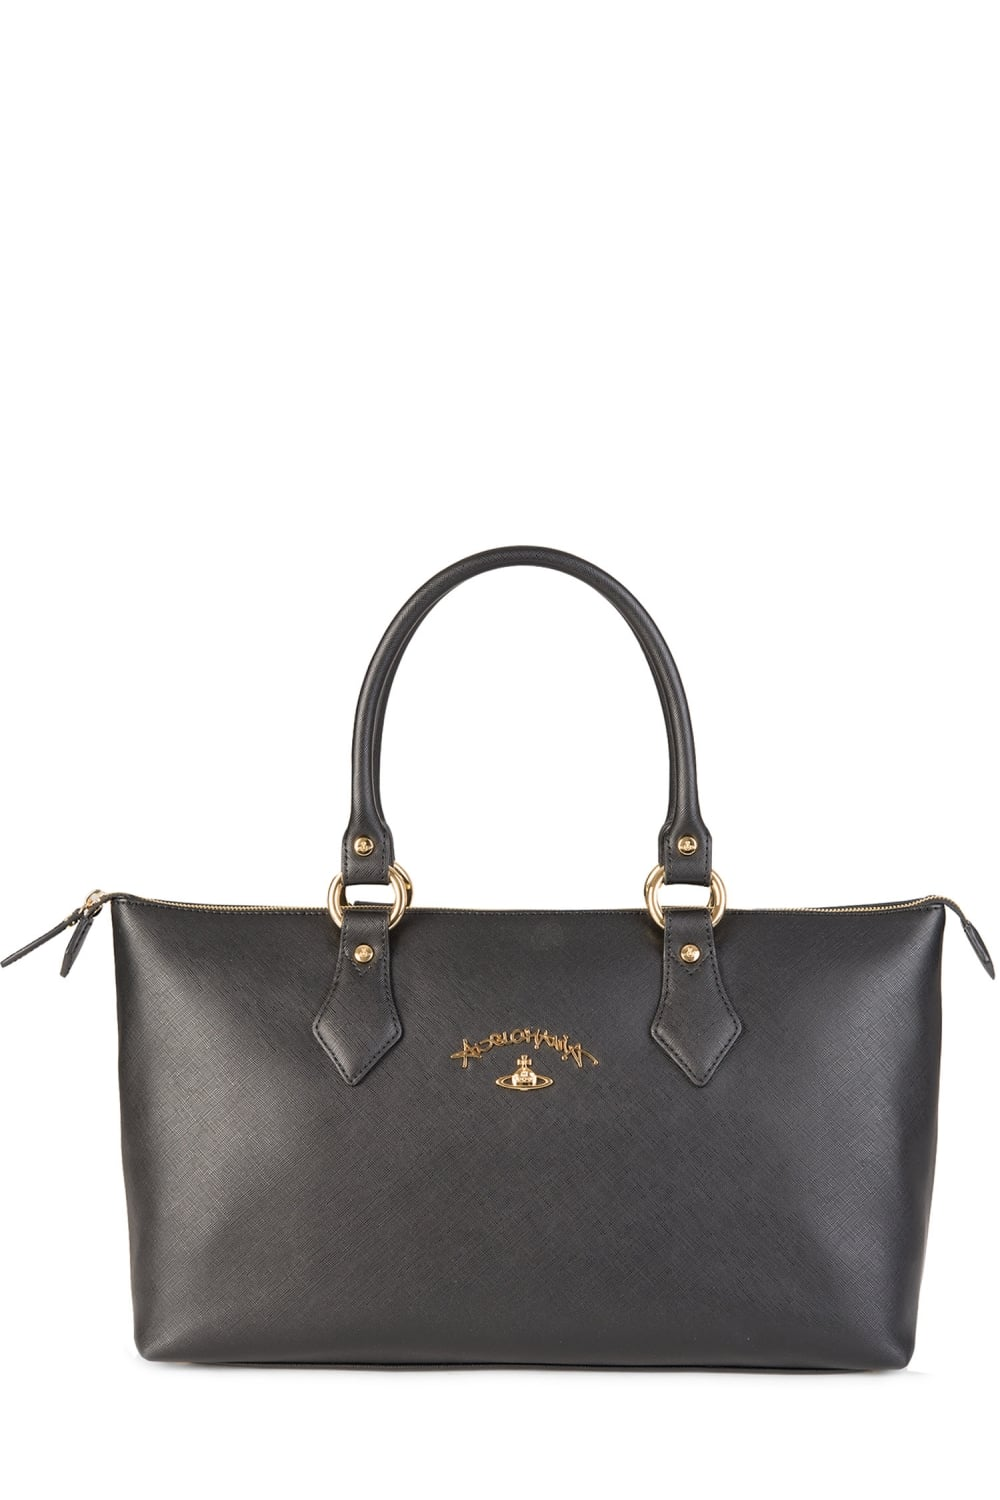 43f3467a07 Vivienne Westwood Anglomania Divina Tote Bag